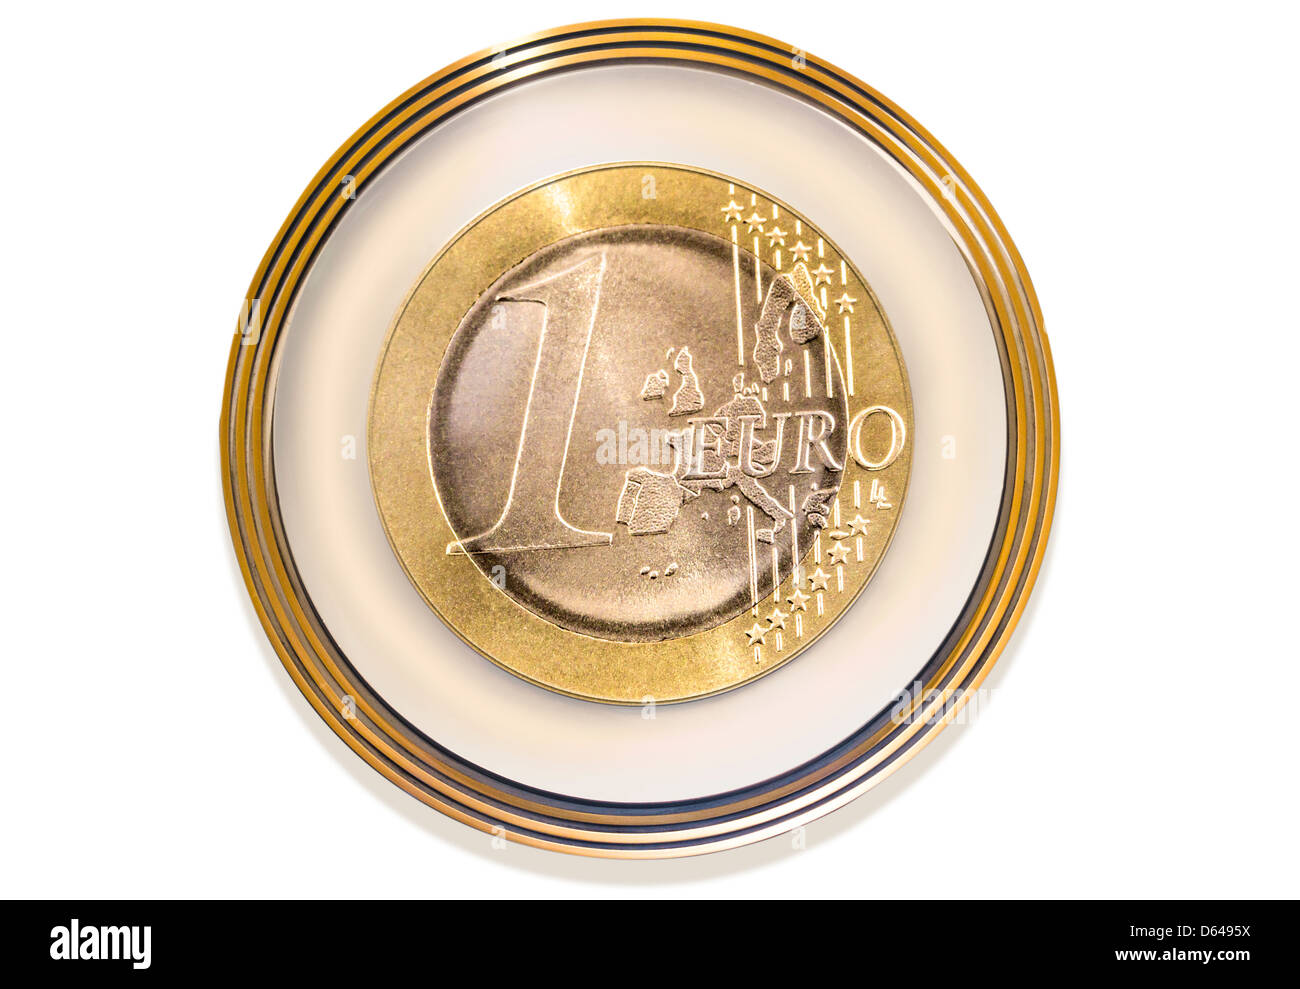 Euro coin as coat of arms on white background - Stock Image